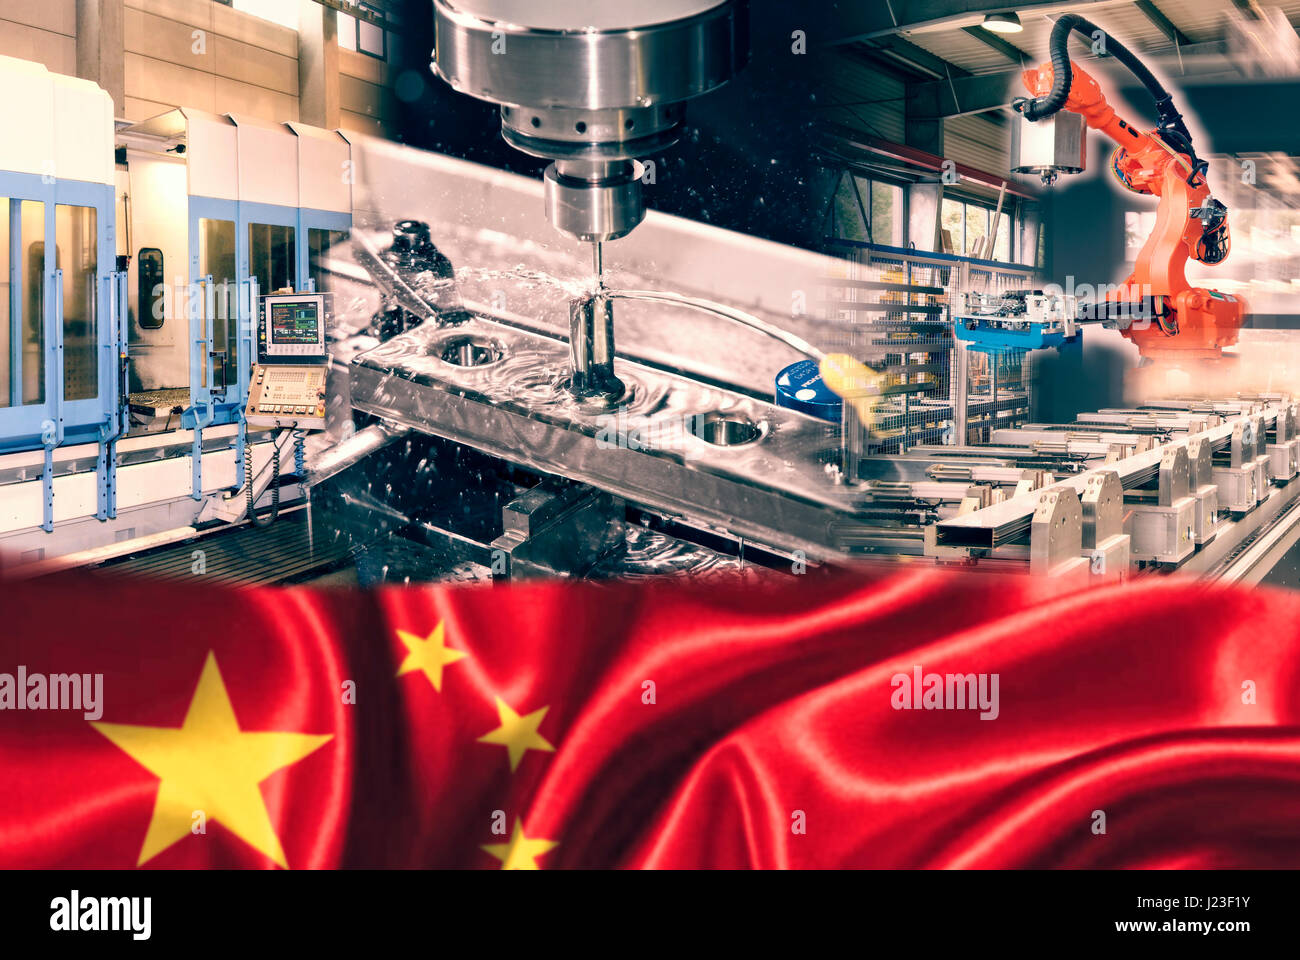 Industrial production and Chinese flag - Stock Image